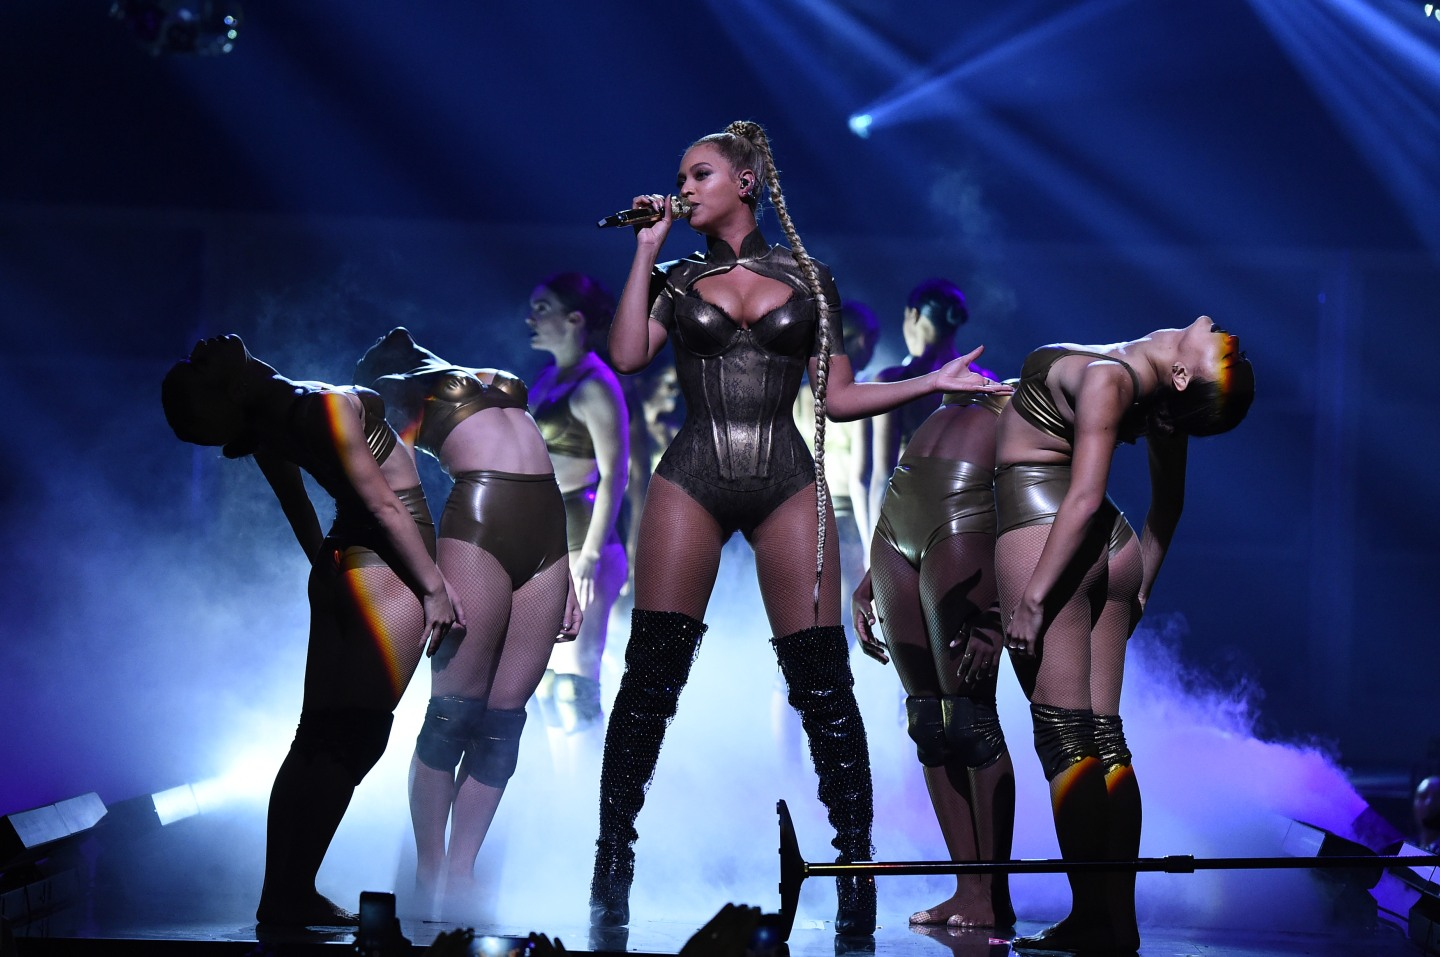 Beyoncé brought back her all-powerful braid for one night